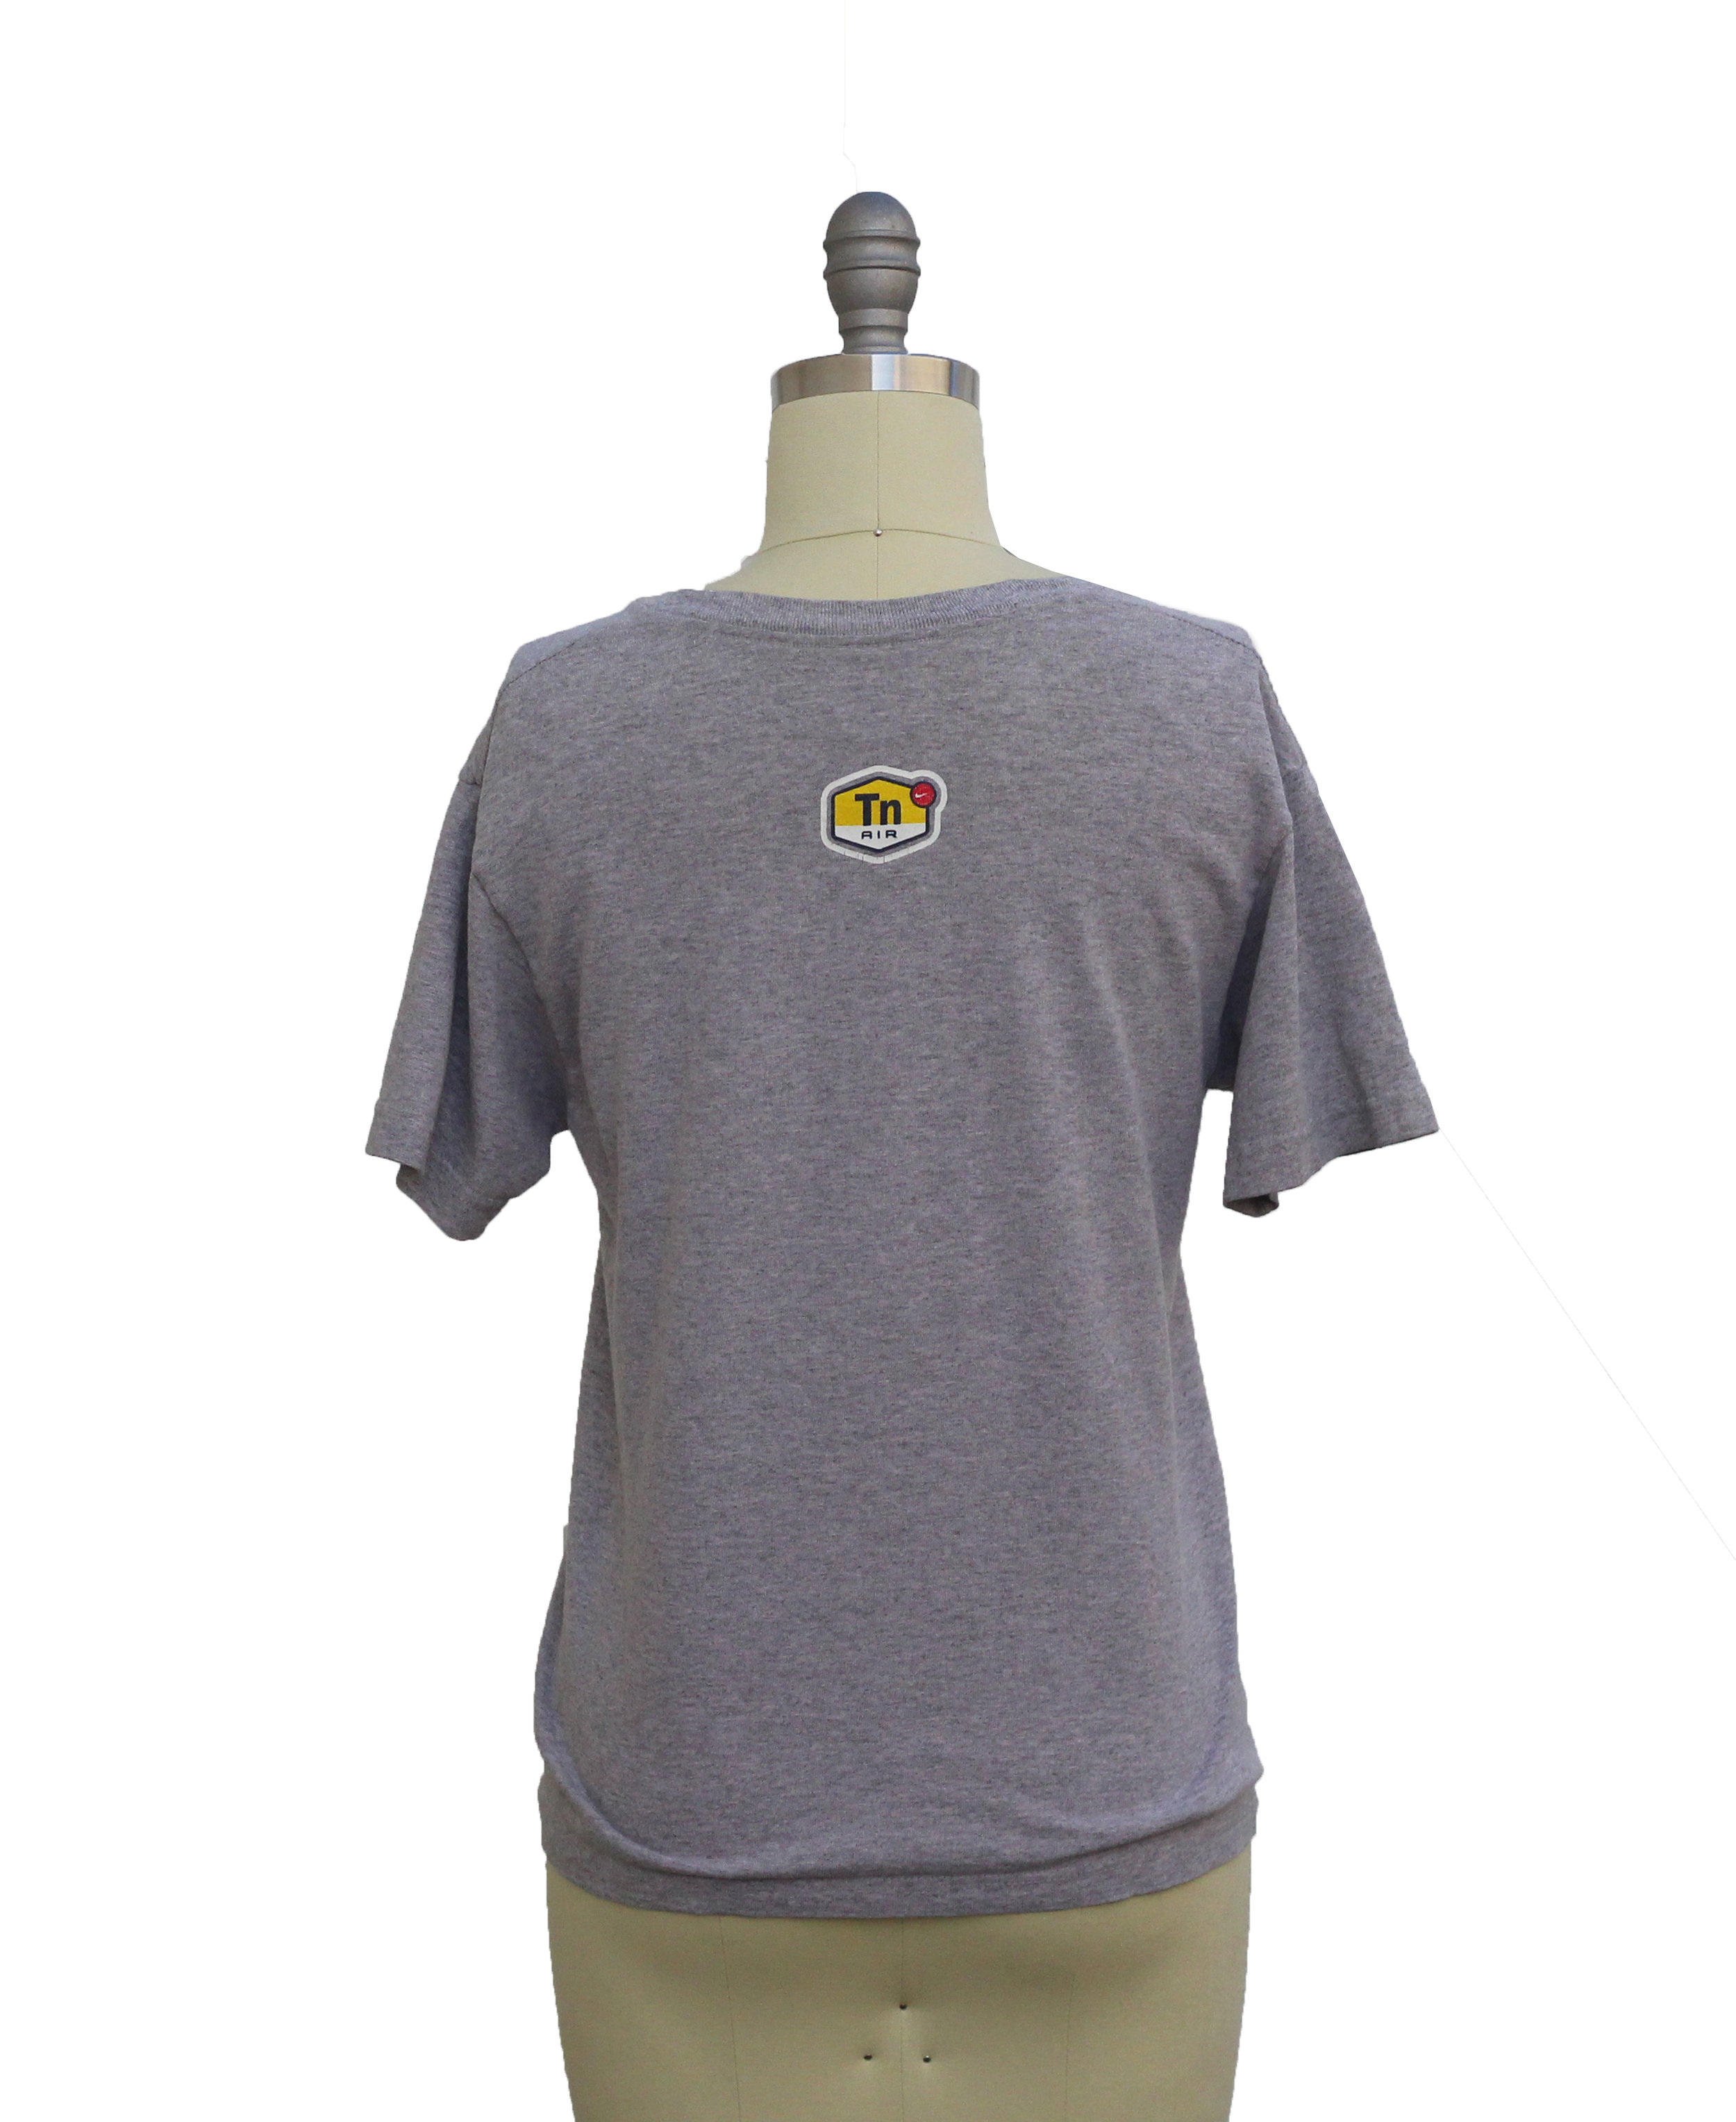 info for be726 60b0b Vintage Nike Air Max Plus TN T Shirt (Size Youth S) — Roots